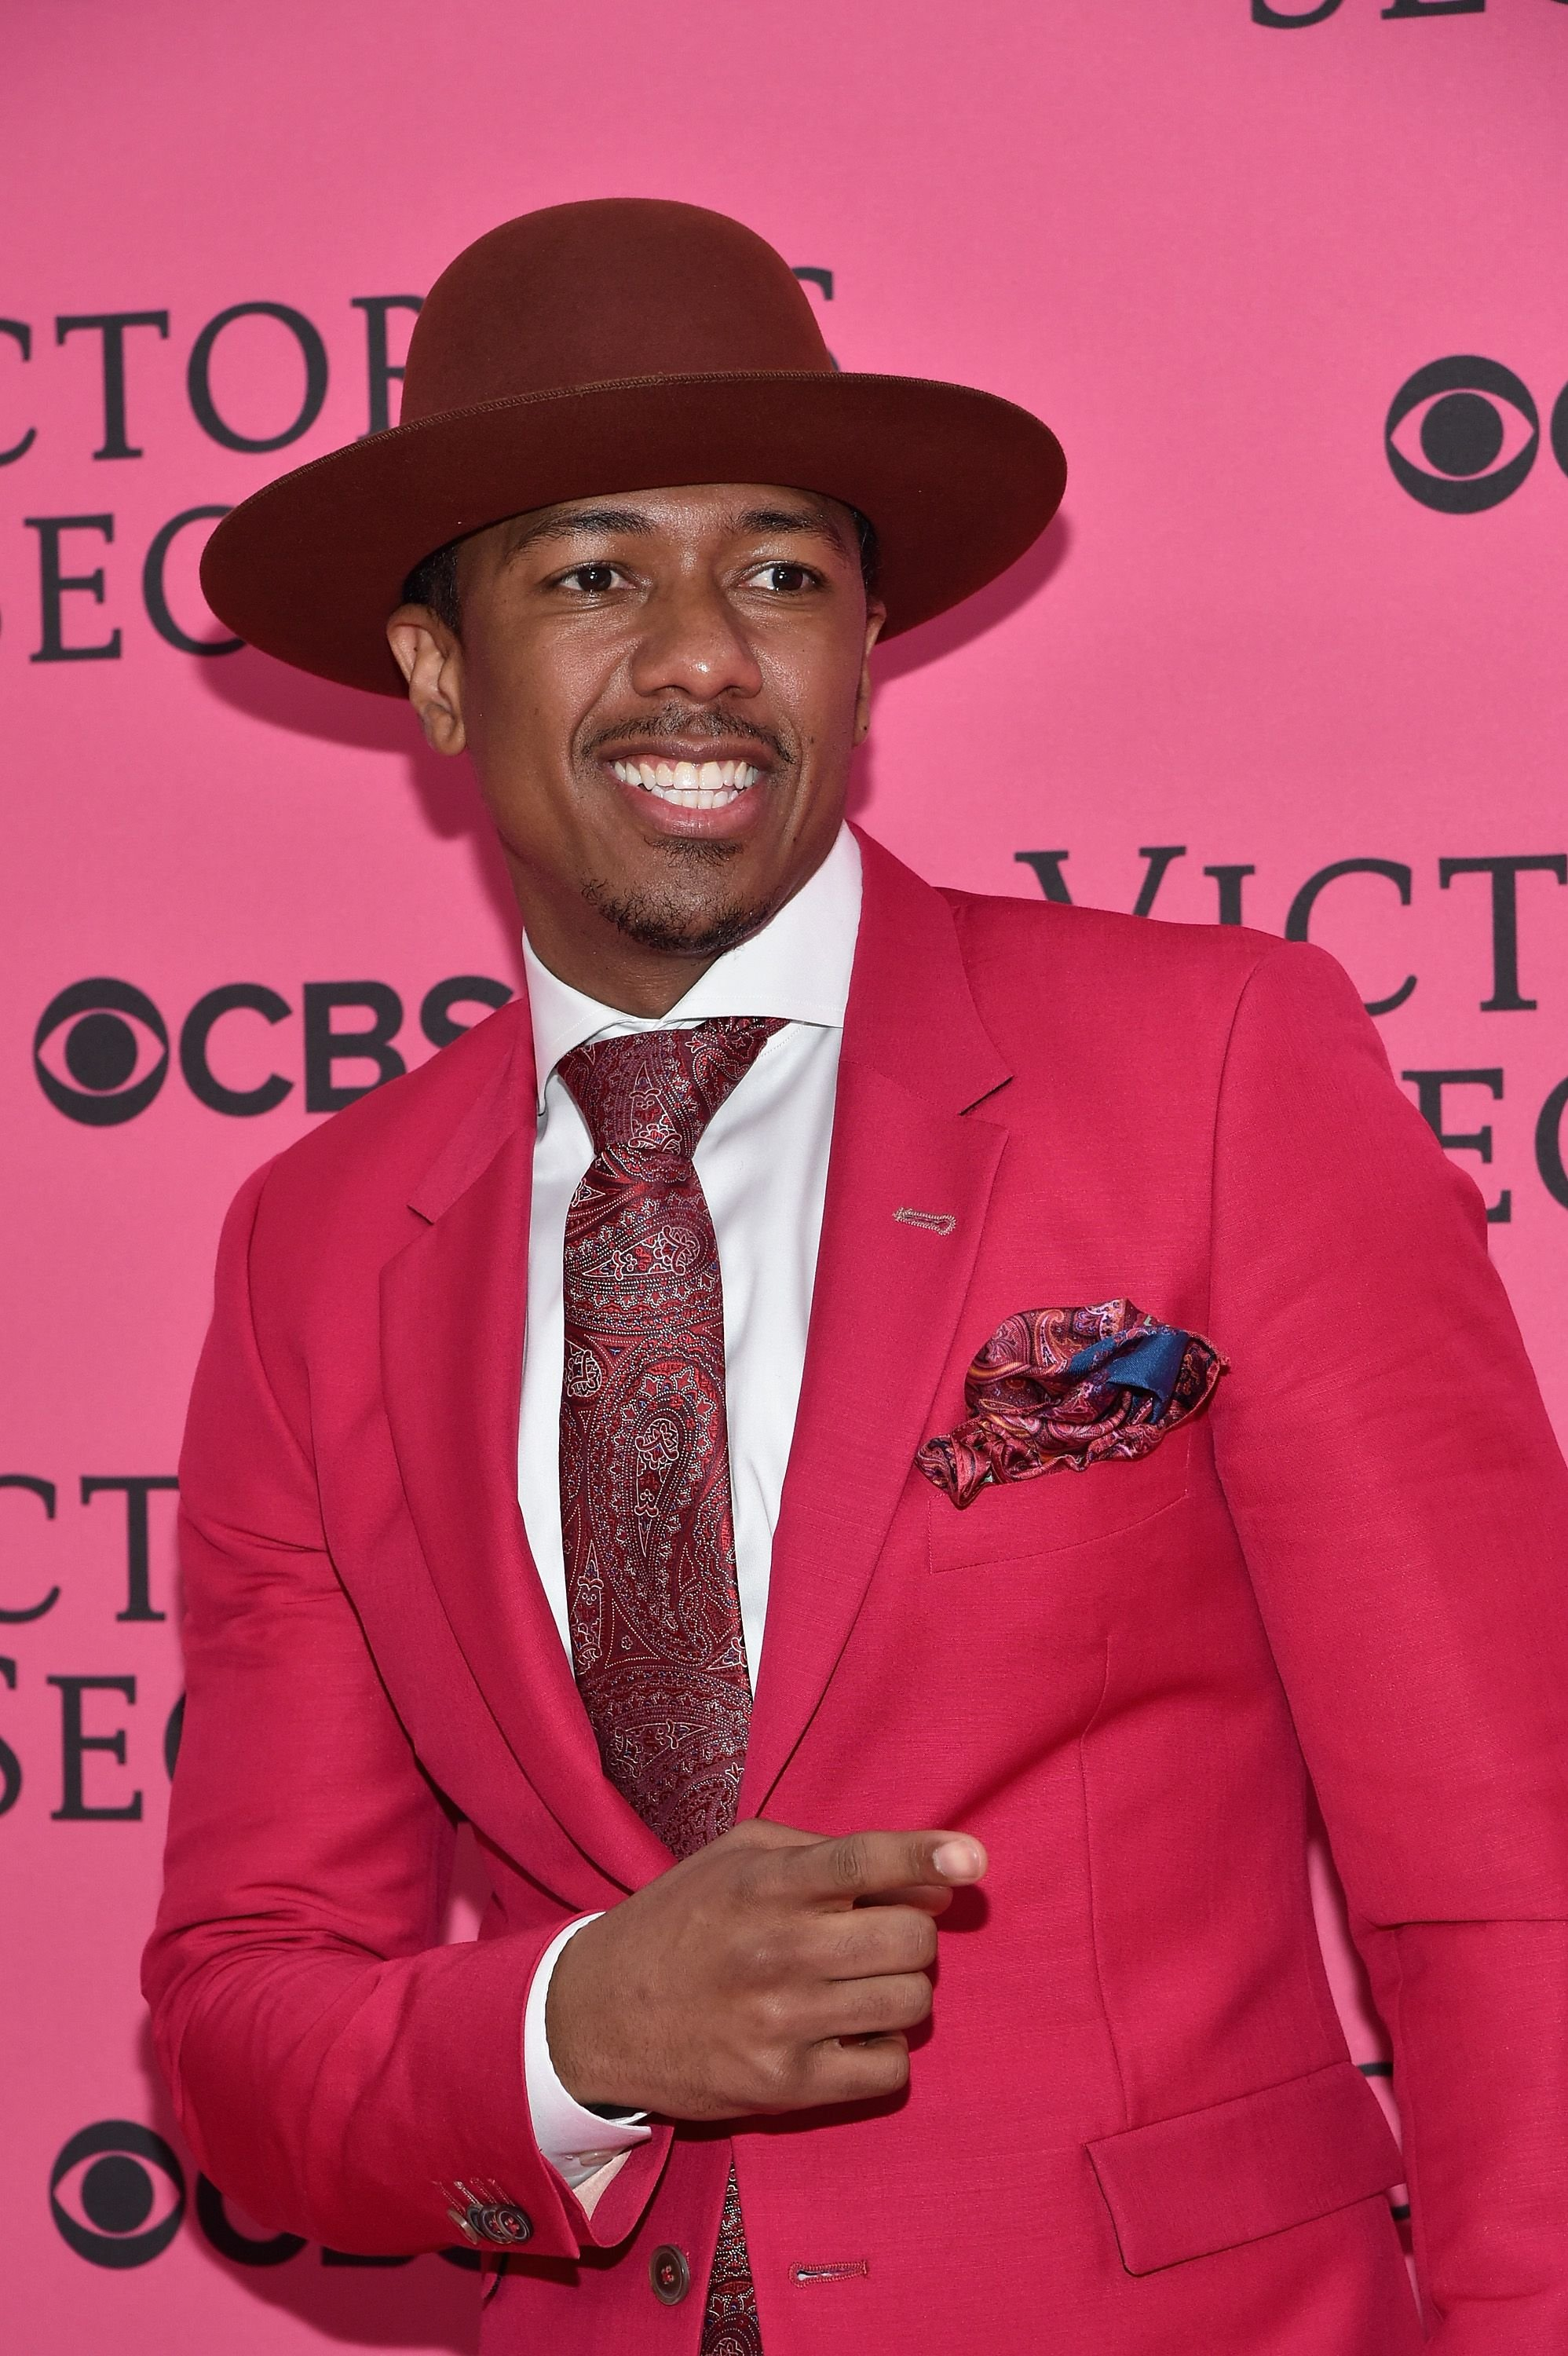 Nick Cannon at Victoria's Secret Fashion Show at Lexington Avenue Armory on November 10, 2015, in New York City | Photo: Mike Coppola/Getty Images